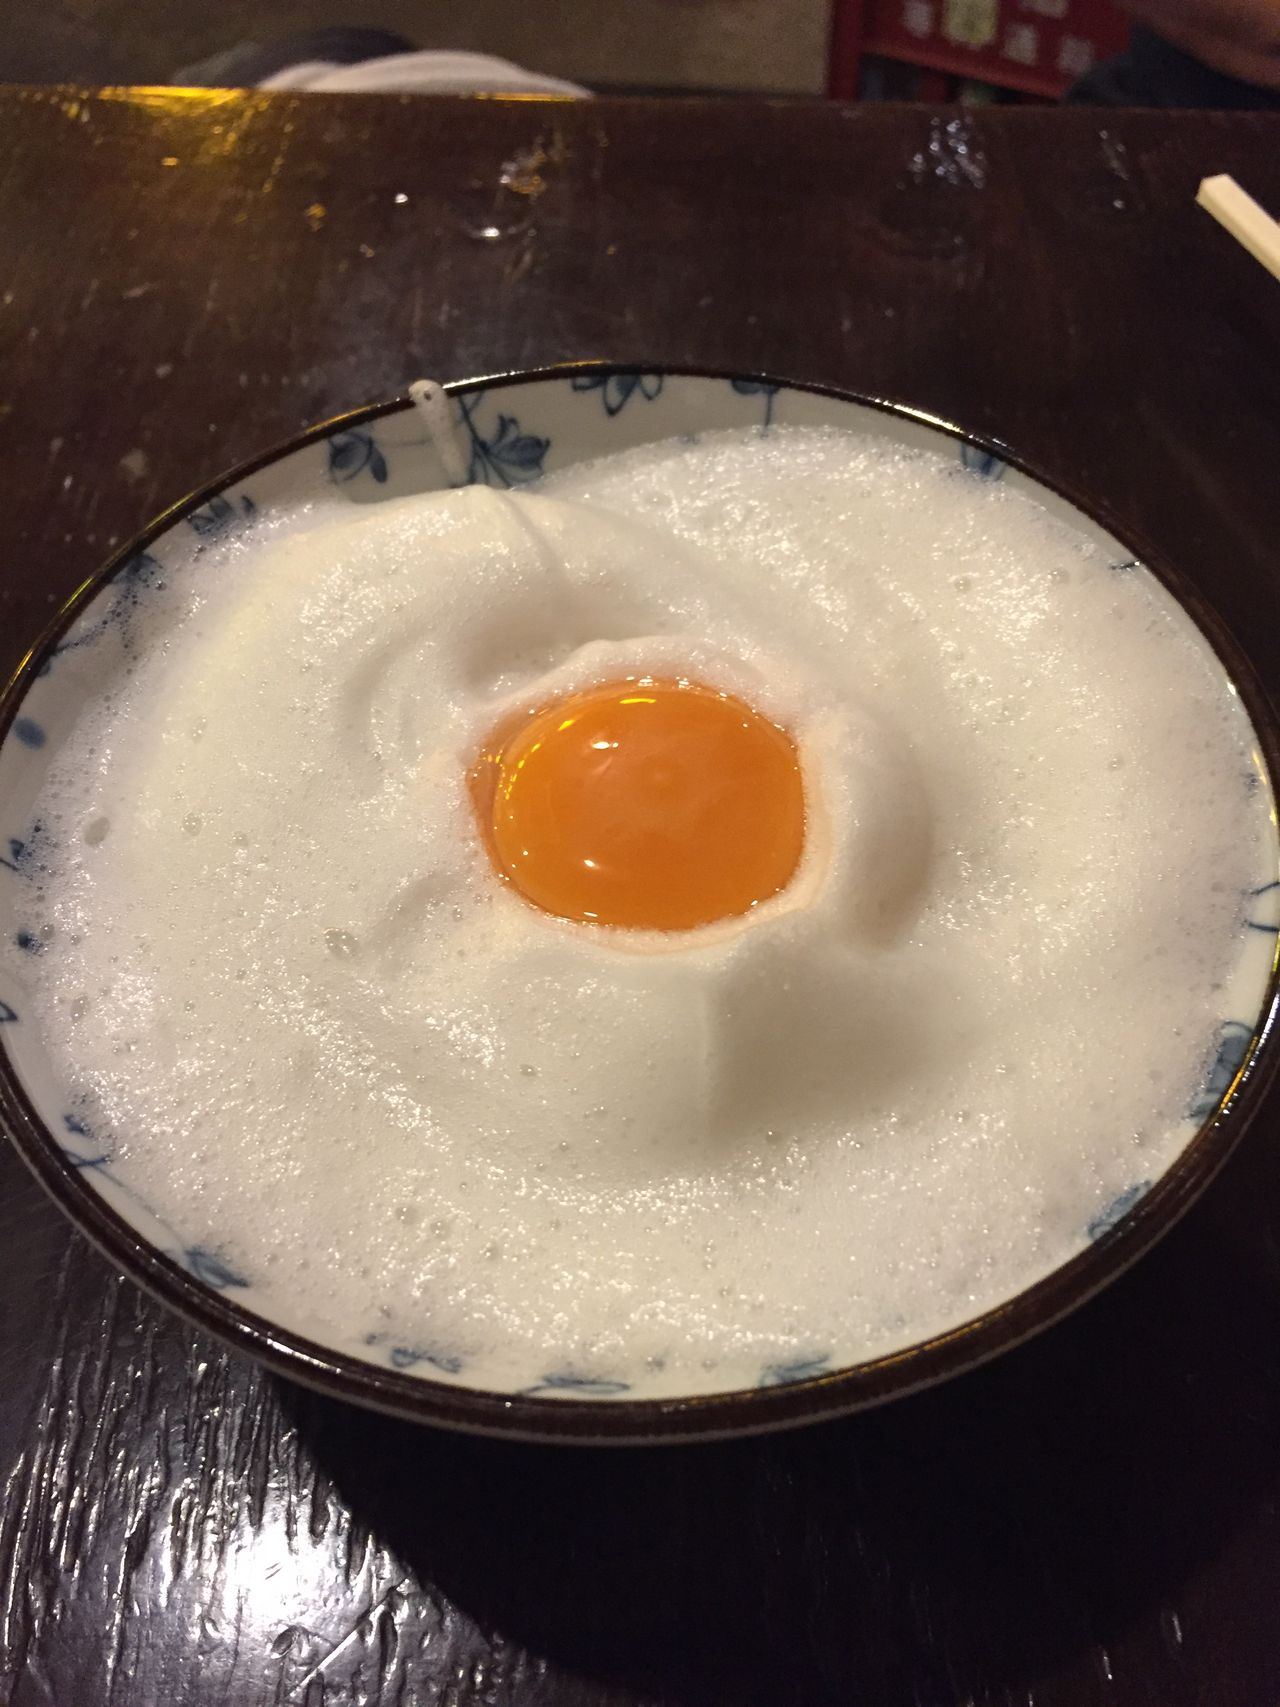 Bowl Close-up Day Egg Whites Egg Yolk Foamy Food Freshness Fried Egg Healthy Eating Indoors  Japanese Food No People Sunny Side Up Whipped Egg